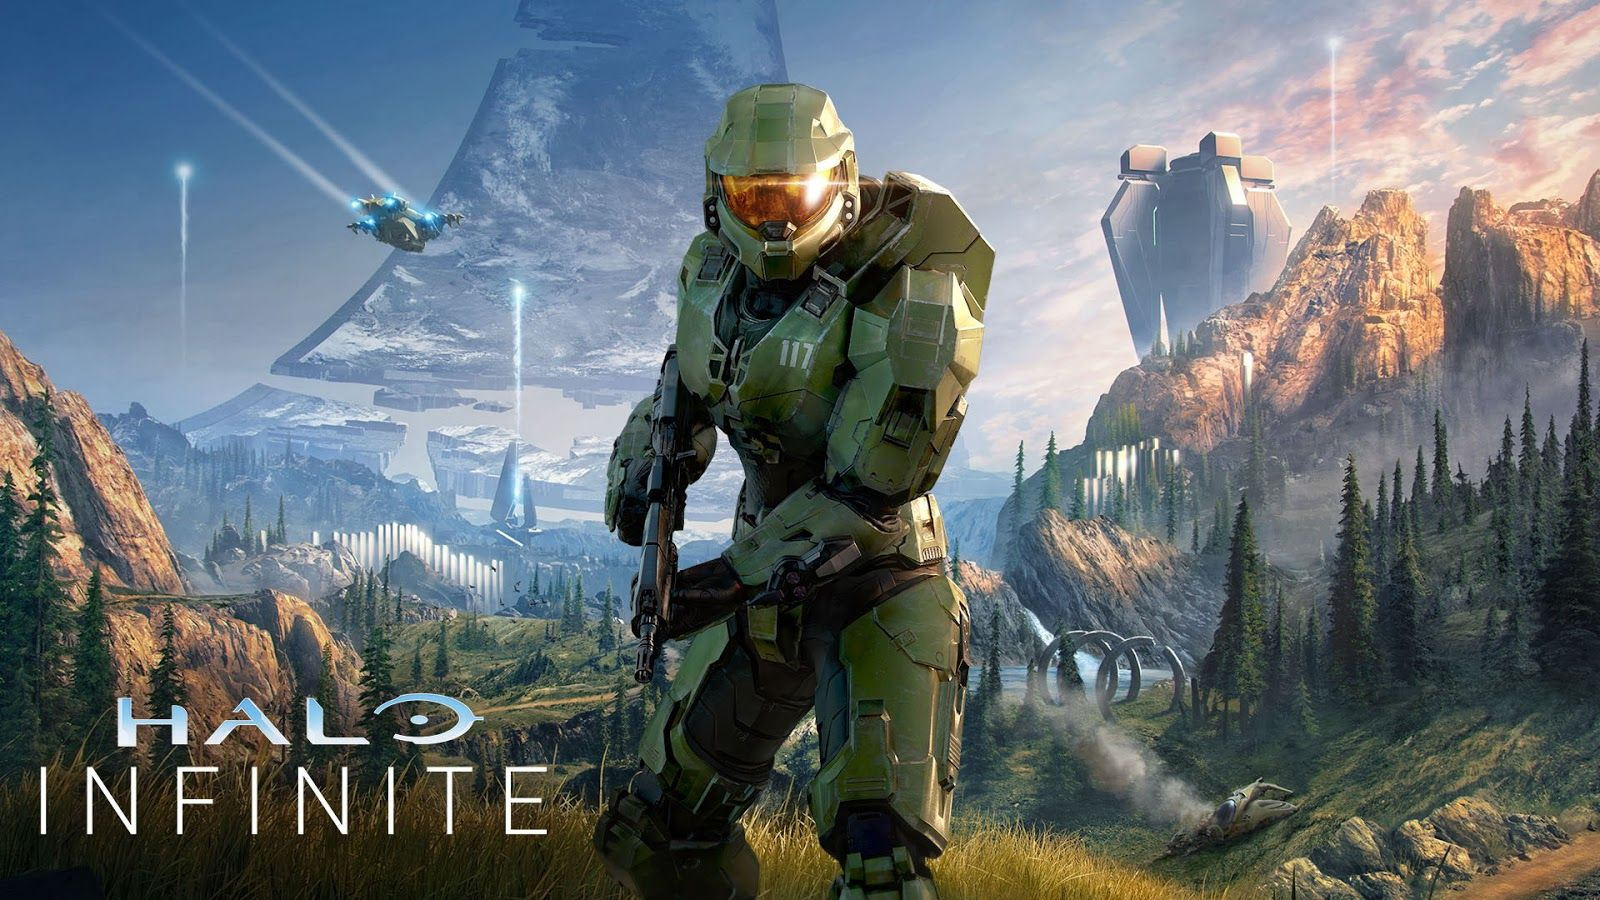 /the-new-halo-game-halo-infinite-release-date-and-gameplay-ece33d0 feature image